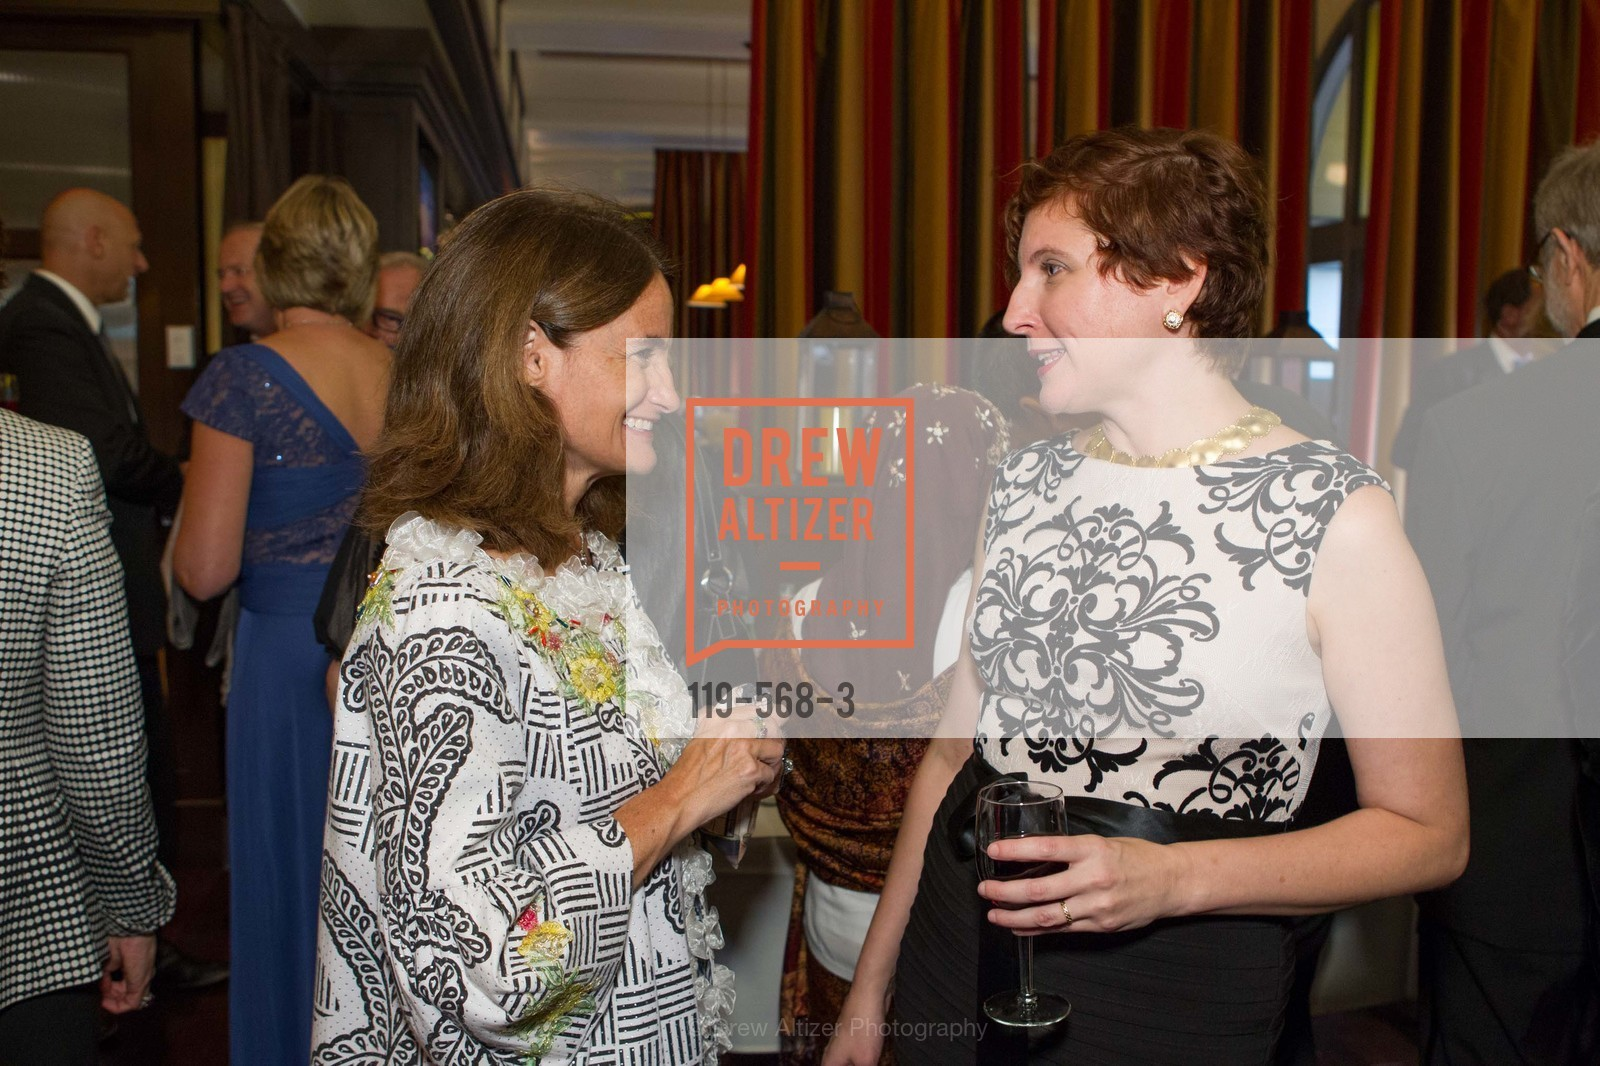 Elizabeth Economy, Erica Burns, SOTHEBY'S  Hosts a Private Viewing of Highlights from the Collection of MRS. PAUL MELLON, US, September 17th, 2014,Drew Altizer, Drew Altizer Photography, full-service agency, private events, San Francisco photographer, photographer california